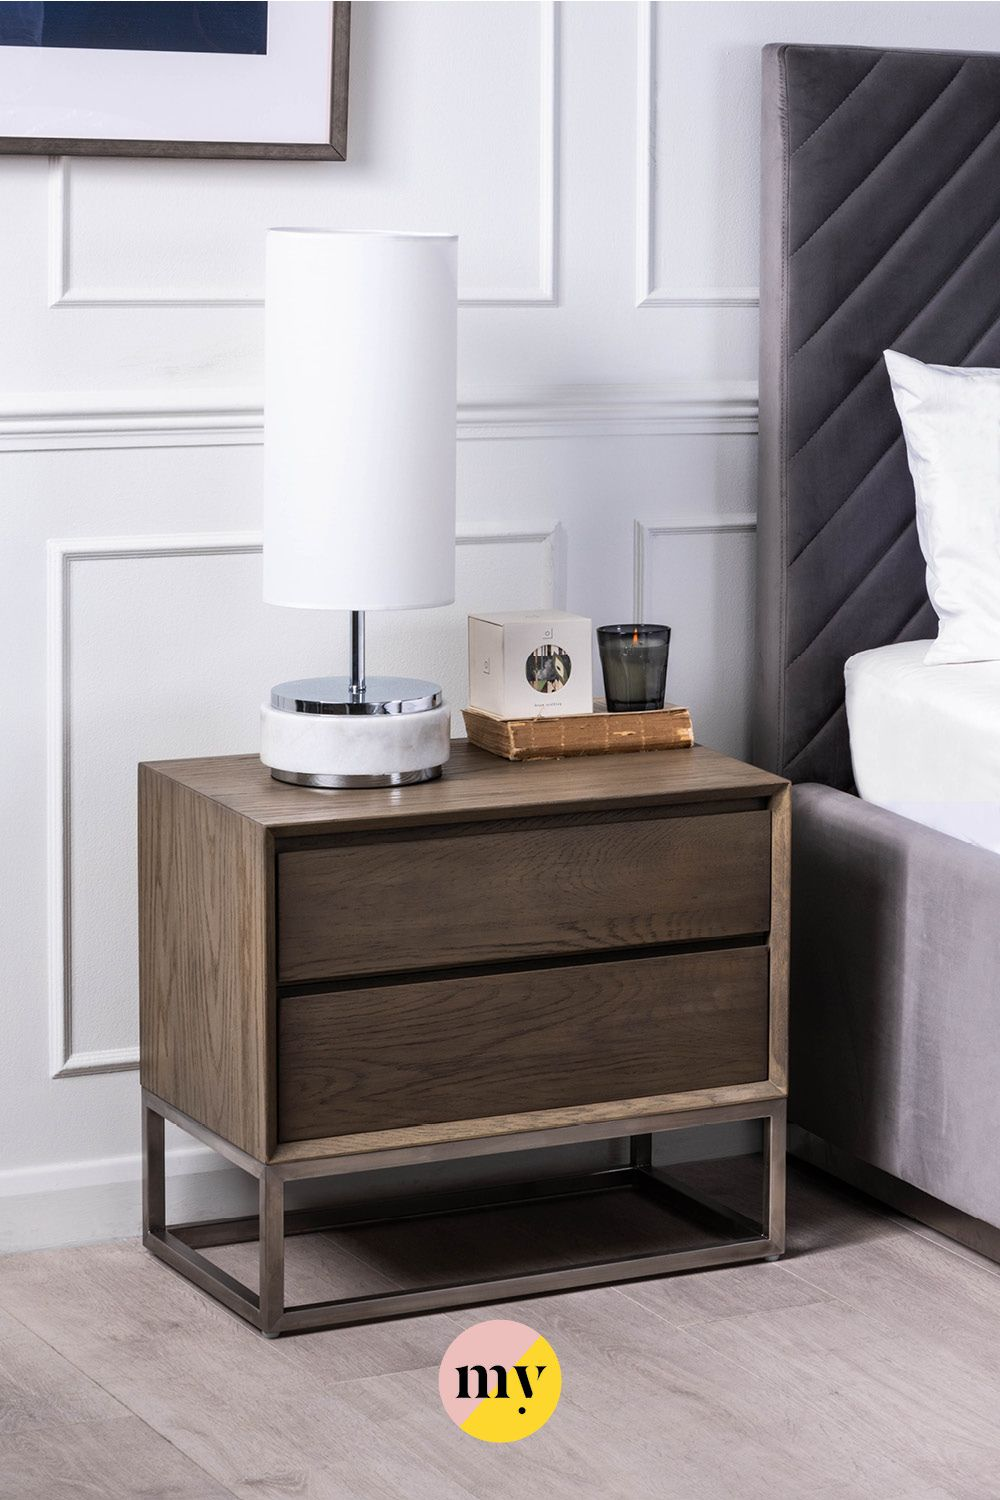 My Bedside Table: Table, My Furniture, Bedside